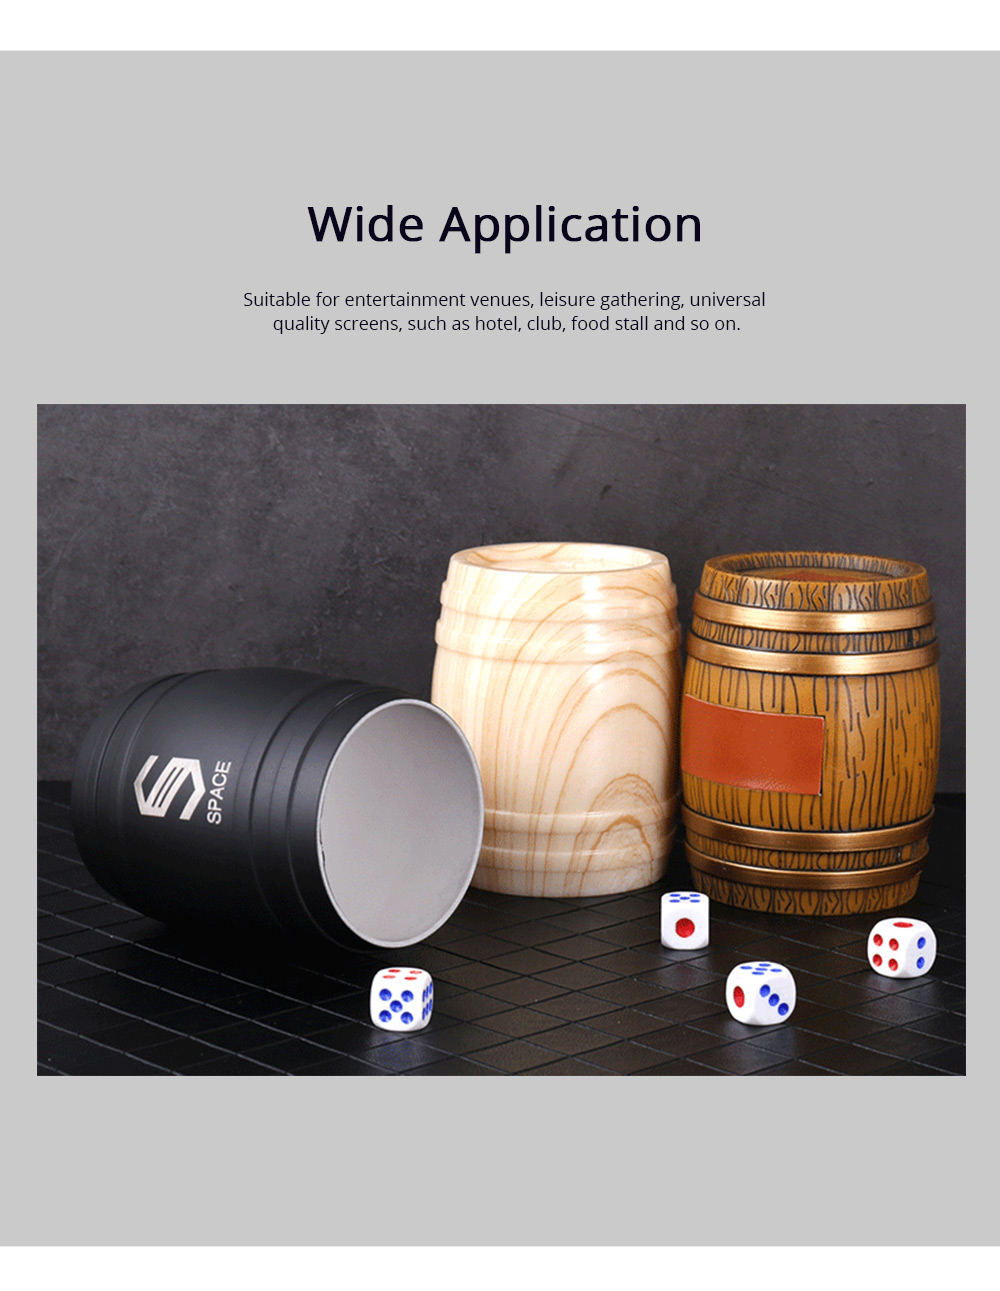 Thicken Dice Cup Fashion Stylish Wine Barrel Shaped Dice Shaker Holder for Playing Dice Games in Bar KTV Nightclub 4